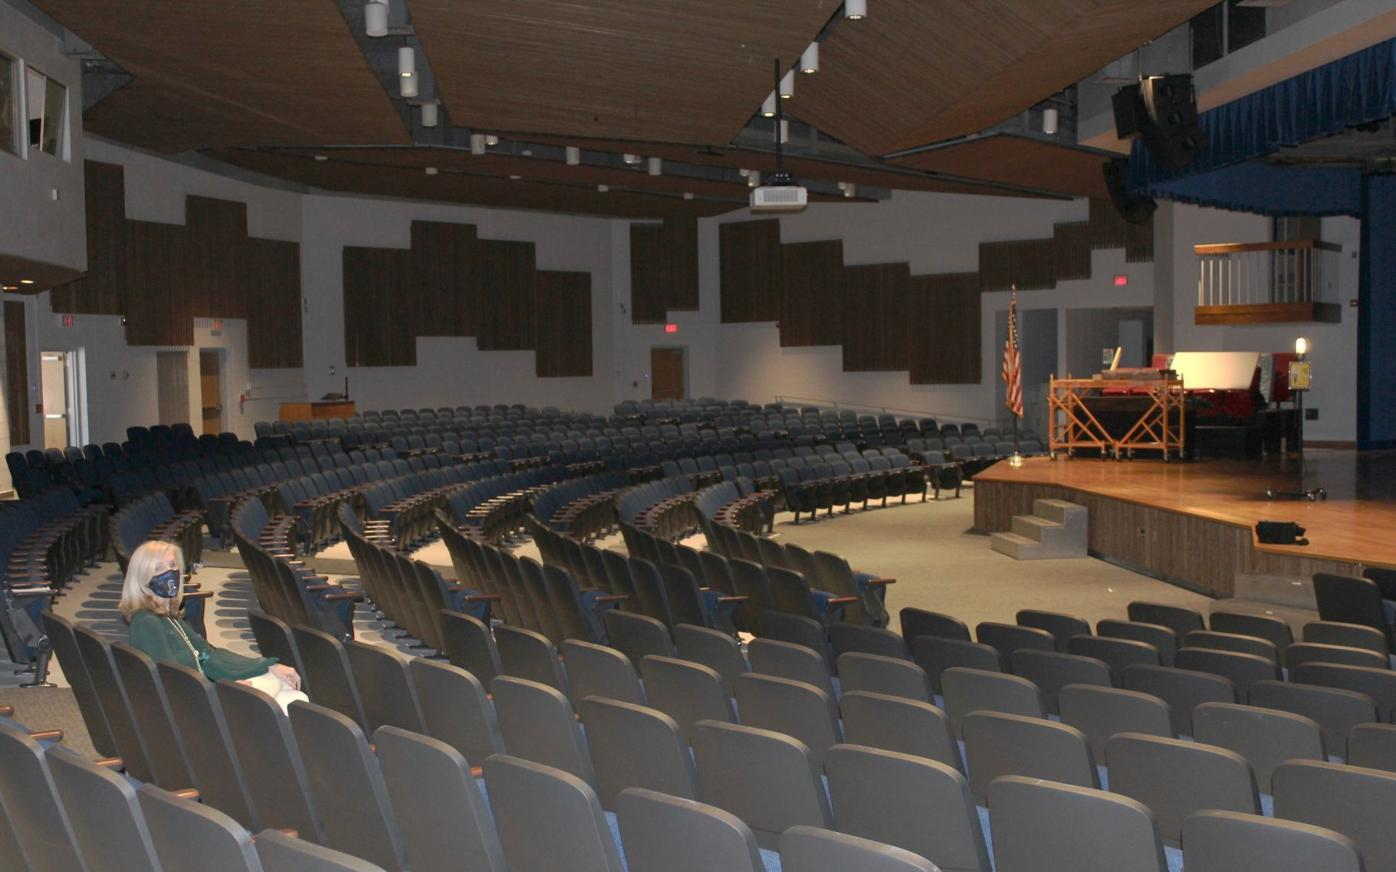 LHS auditorium gets new seating